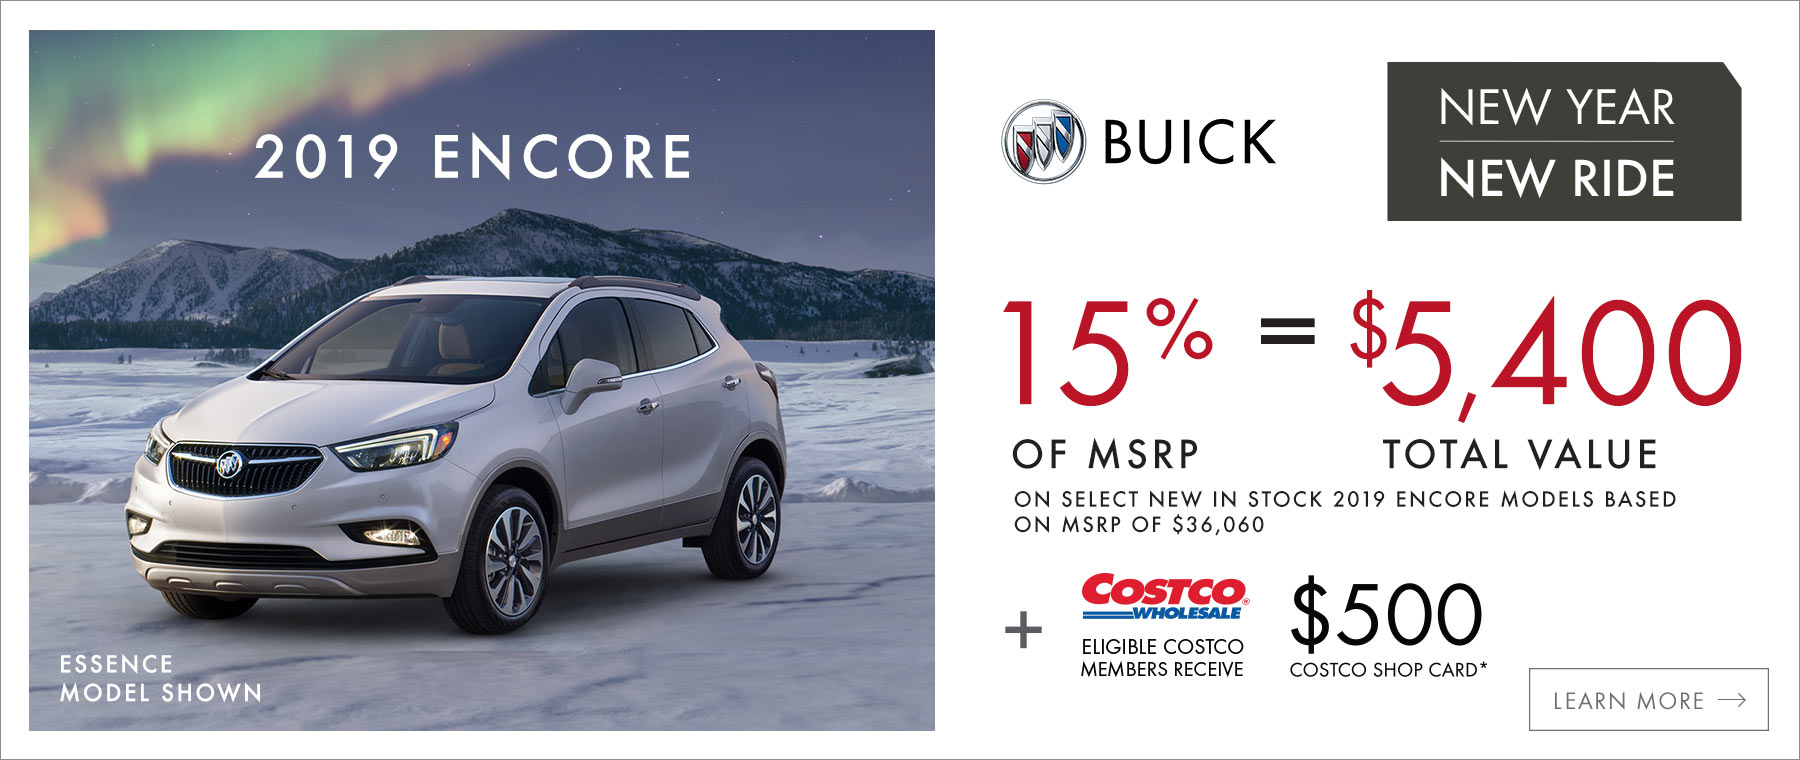 New Year, New Ride 2019 Buick Encore